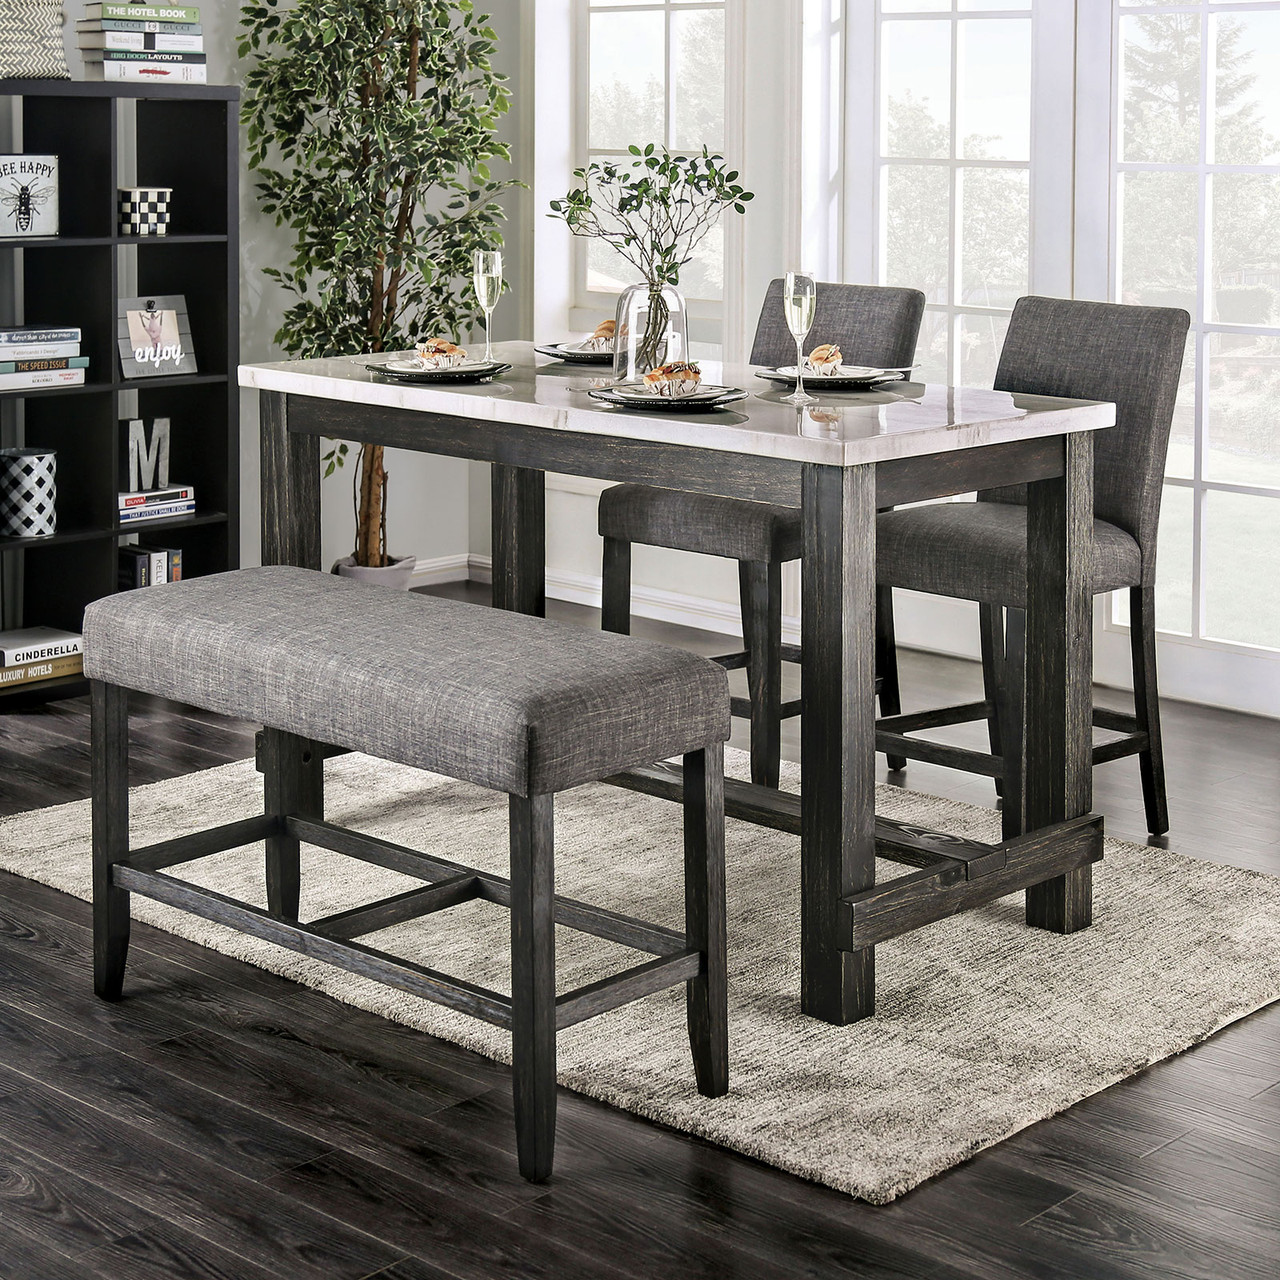 The Brule Rustic 4 Pc Counter Ht Dining Table Set W Bench Available At Furniture Express Hi Serving Honolulu Hi And Surrounding Areas